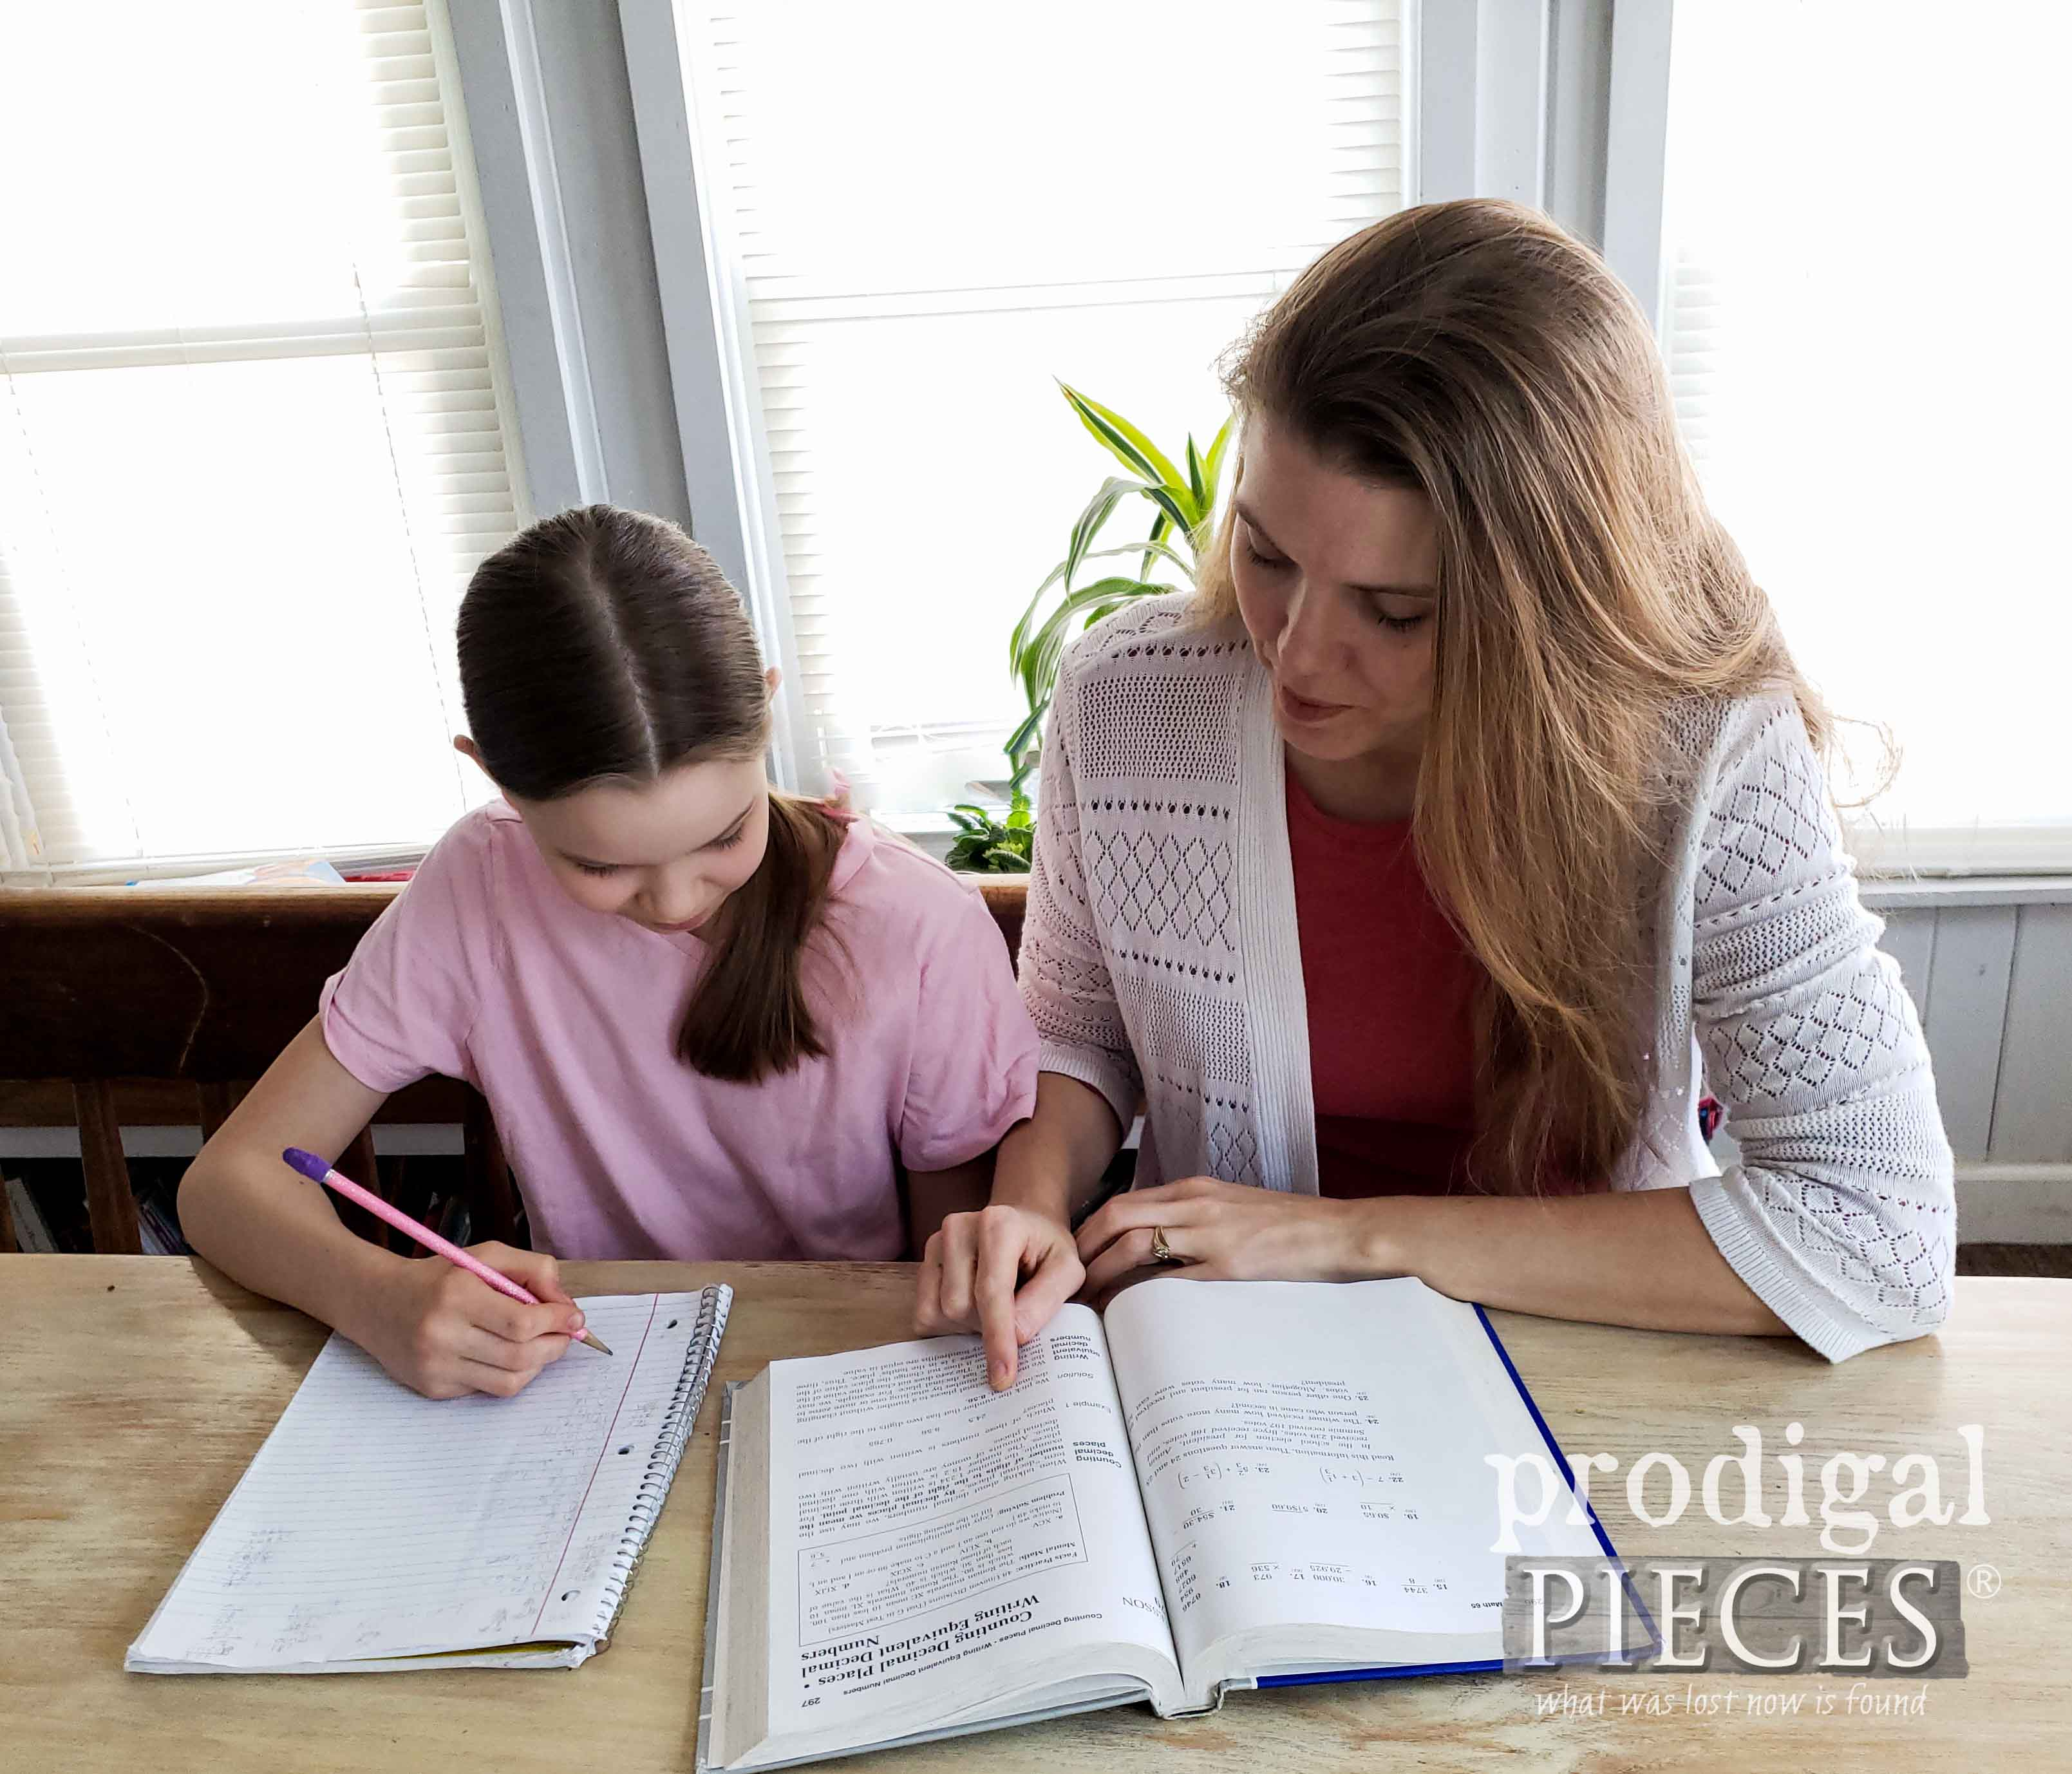 Larissa of Prodigal Pieces homeschooling her children | prodigalpieces.com #prodigalpieces #homeisthekey #home